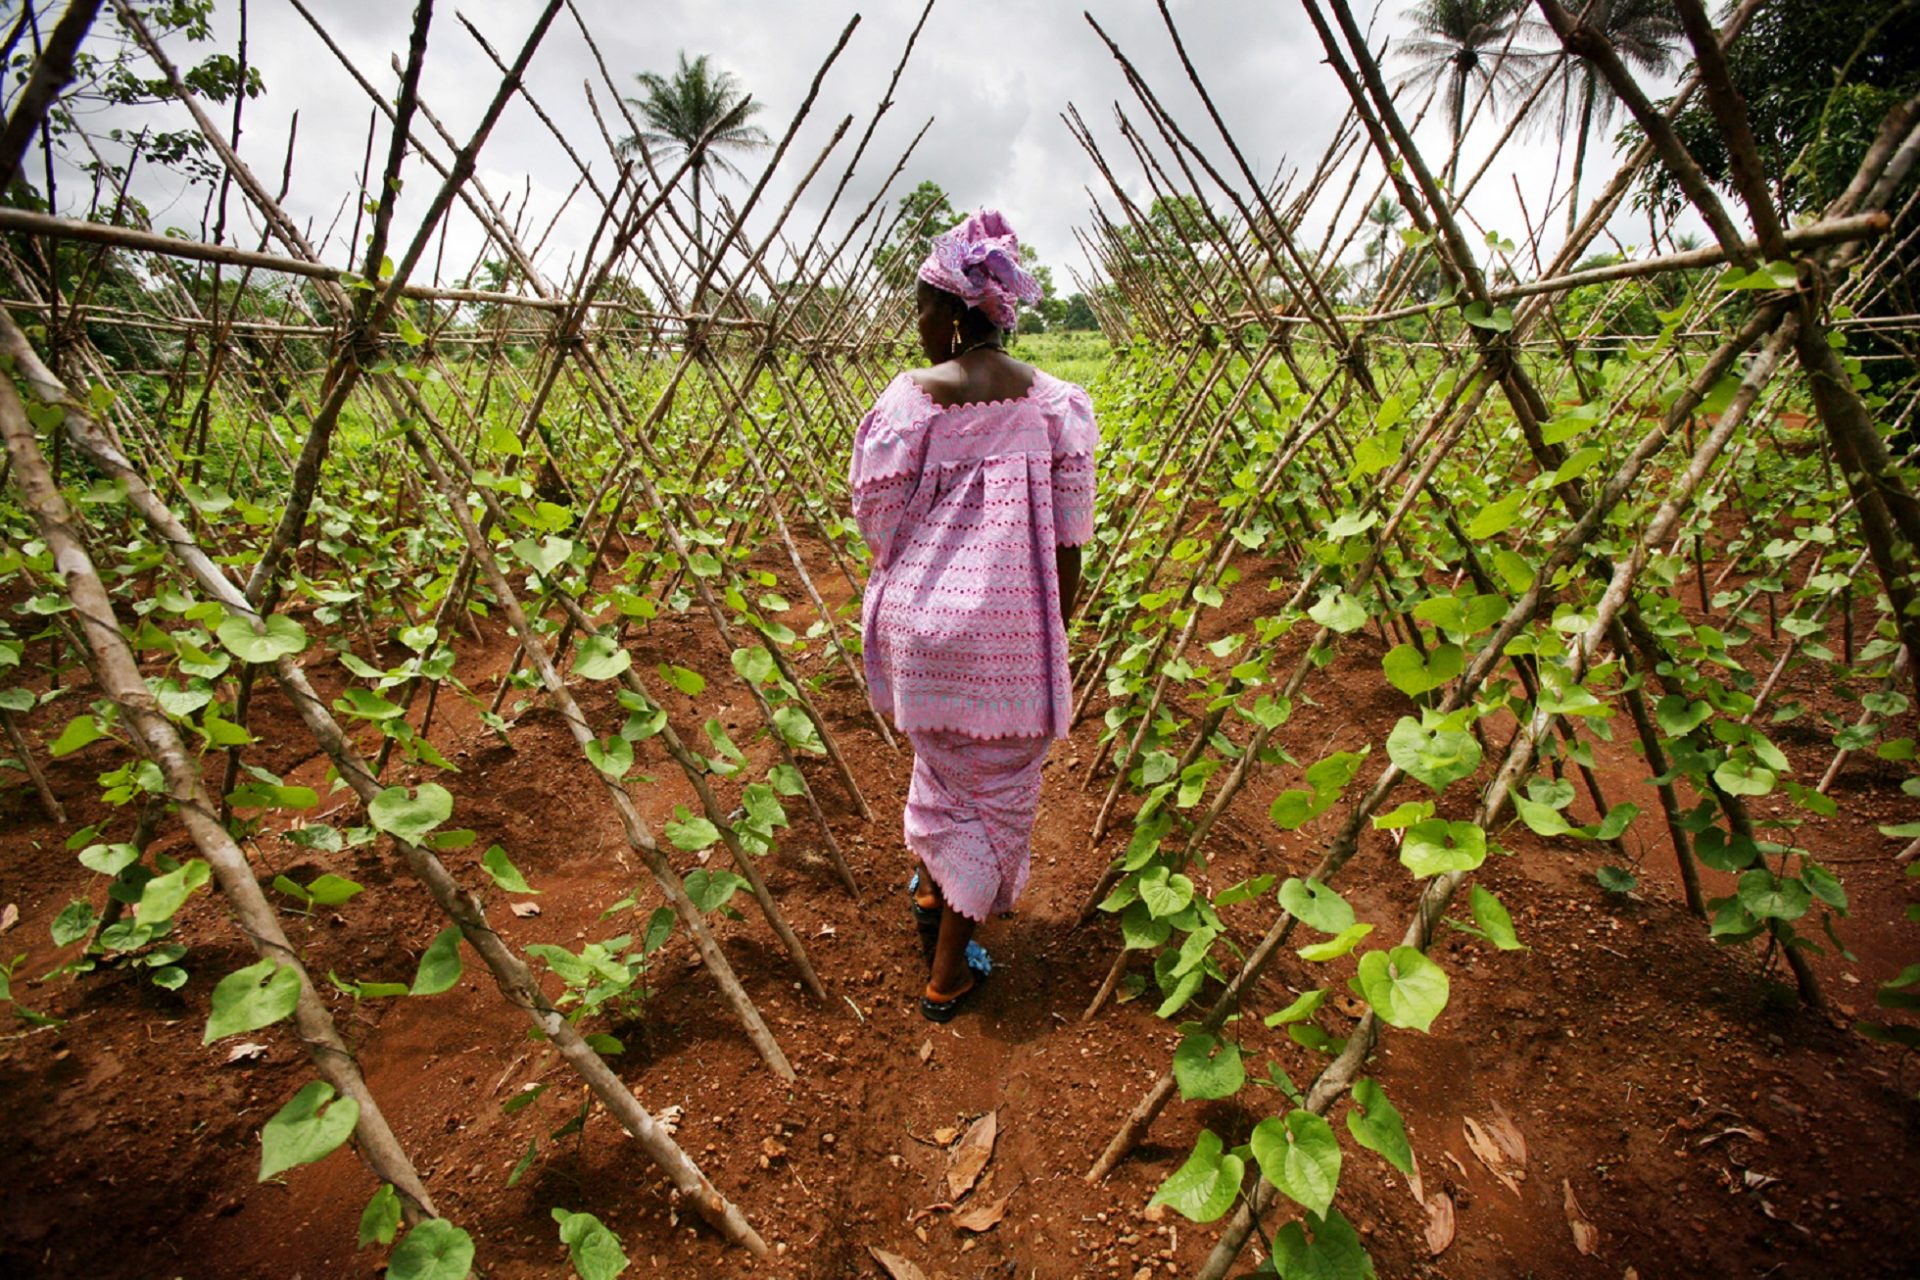 Port Loko, Sierra Leone -Ñ Marie Kabba, 52, a widow and member of the Kamuyu group in Port Loko Township, surveys a row of Chinese beans that climb trellised bamboo poles. The Kamuyu Women's Development Organization are able to realize higher food-production by working as a cooperative to farm their land. Kamuyu means 'perseverance' in Temne, one of the native languages in Sierra leone. What is now arable land for this cooperative of women was once a refugee camp for more than a thousand internally displaced people during Sierra Leone's 11-year civil war. The war, fought mostly over the countryÕs rich natural mineral resources, plunged the small West African country into destitution. Although the country is best known for its diamonds, many Sierra Leoneans feel the most valuable resource they lost in the war was their livestock. Together with the people of Sierra Leone, Heifer is working to develop livestock and agriculture projects, helping the country heal from its crises and build self-sustaining communities.